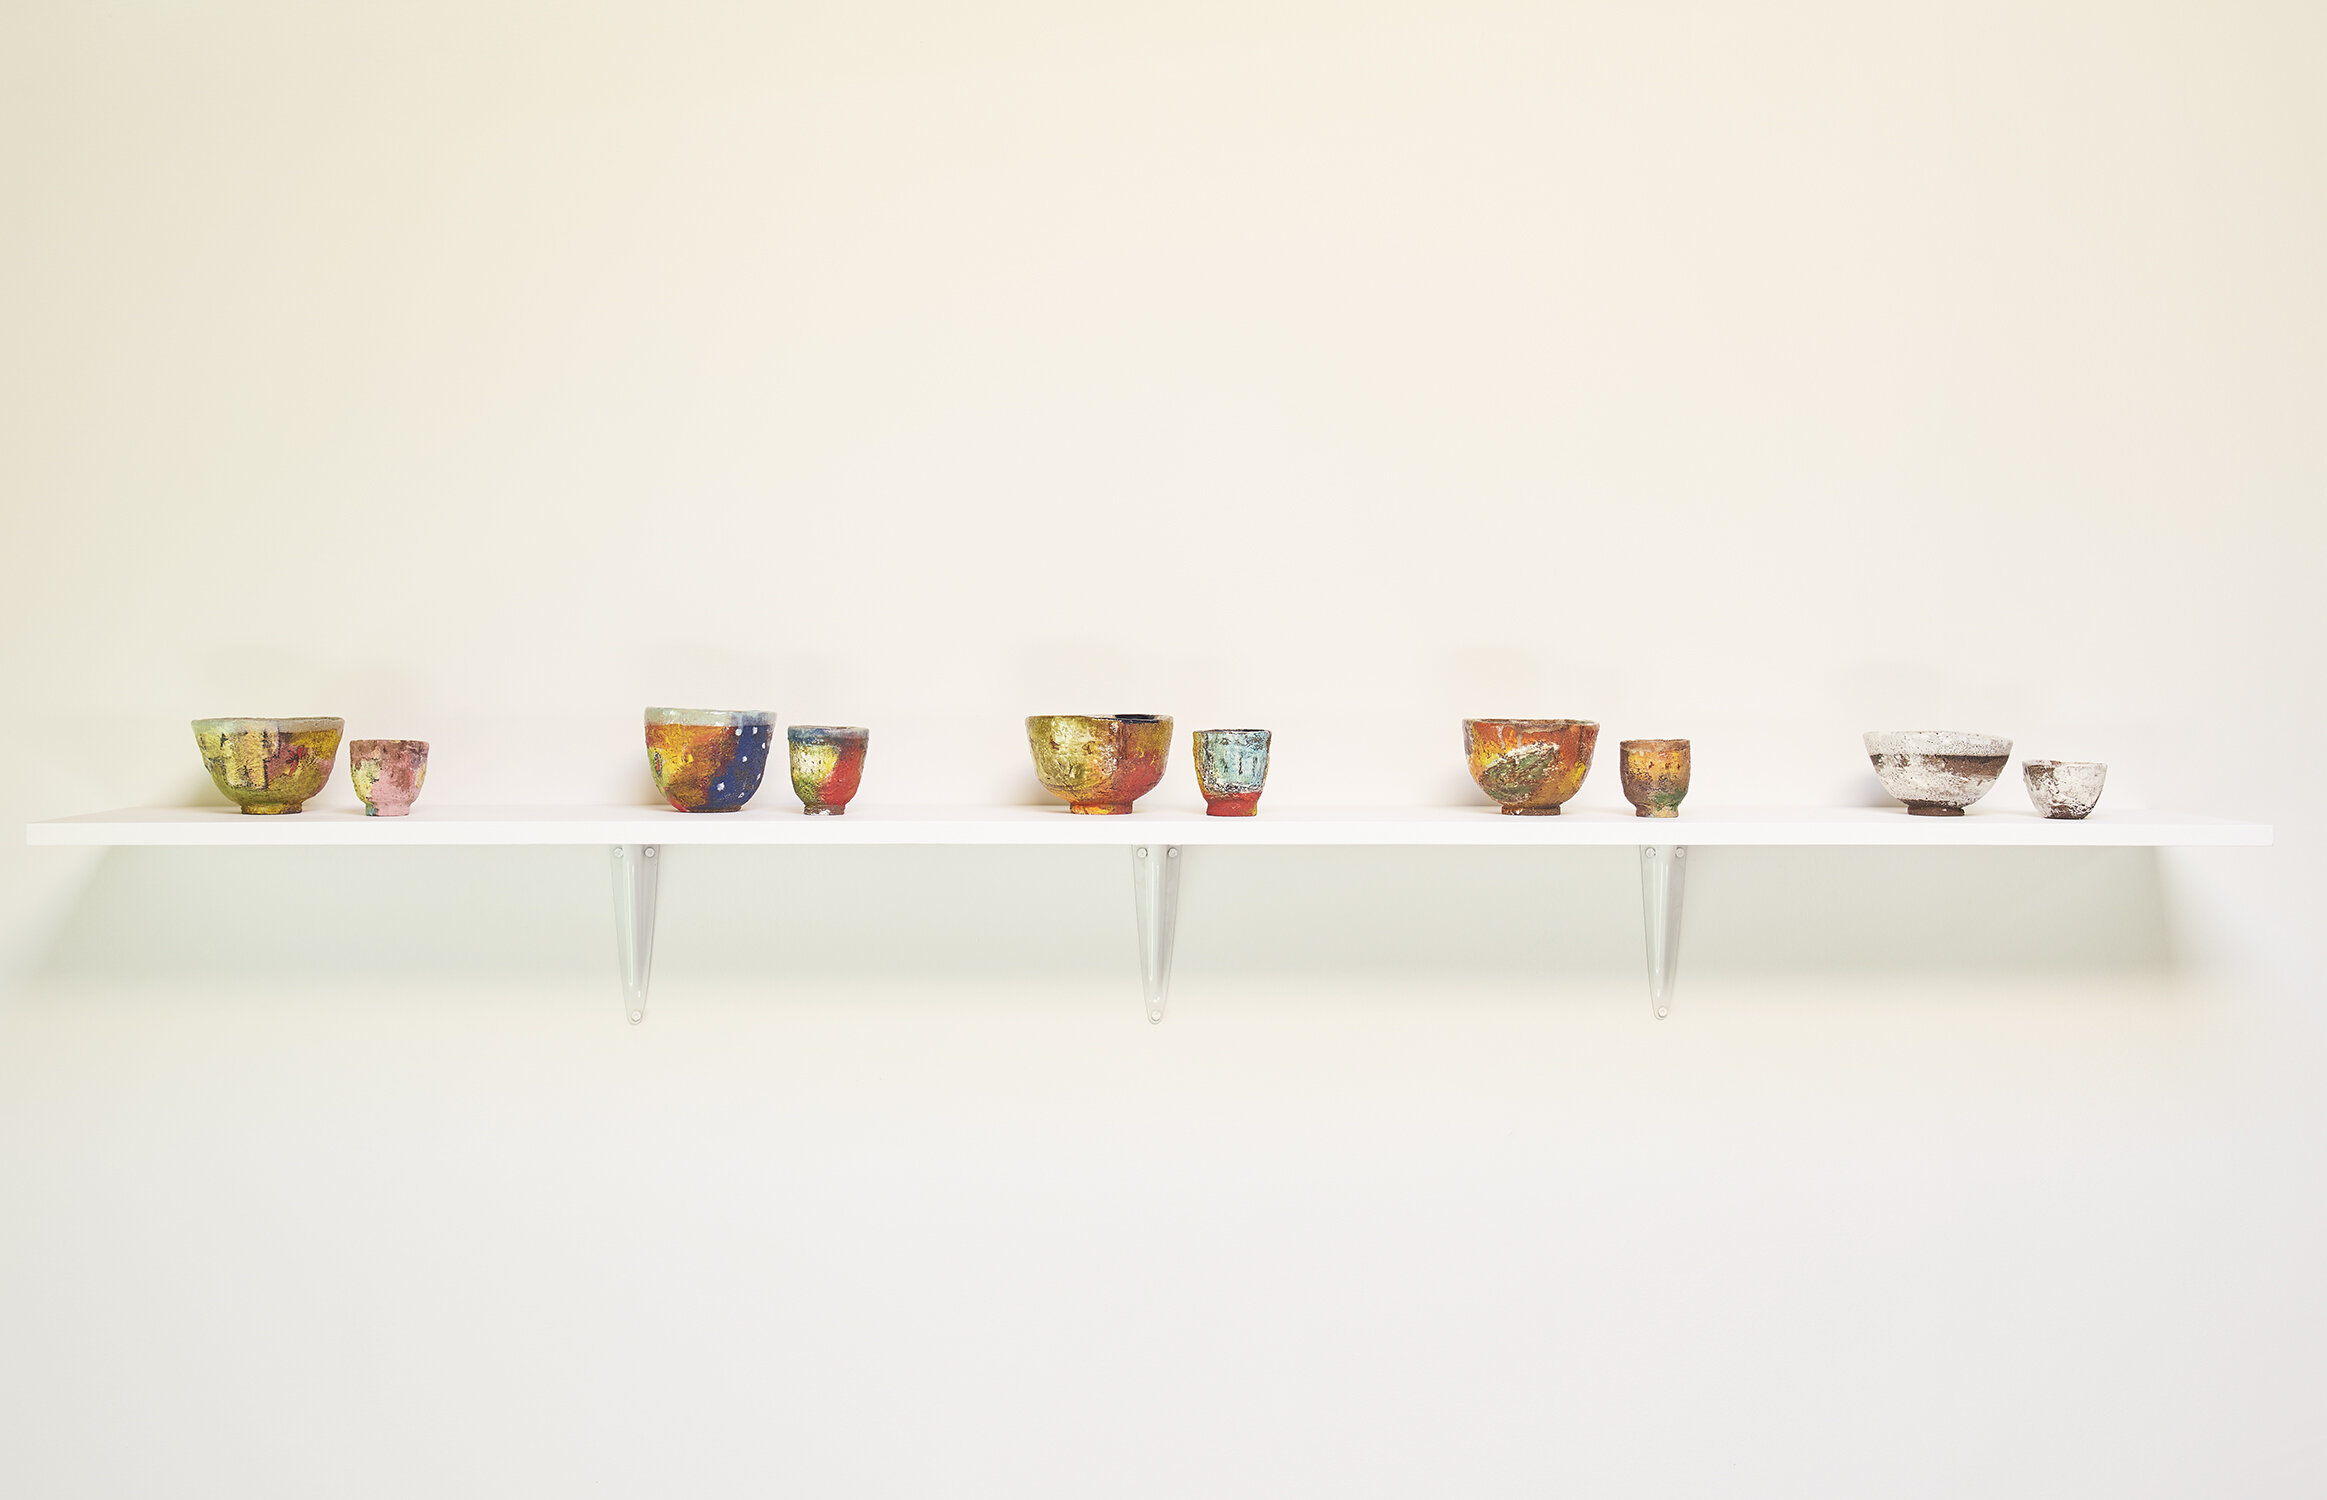 Shino Takeda From left:  Spring, Summer, Indian Summer, Autumn, Winter , all 2019 Traditional Japanese tea bowl and sake cup sets ceramic, slip, underglaze, glaze Tea bowls all approximately 3 ¼ × 5 ¼ × 5 inches (8.26 × 13.34 × 12.70 cm) Sake cups all approximately 2 ⅝ × 2 ½ × 2 ⅞ inches (6.67 × 6.35 × 7.30 cm)